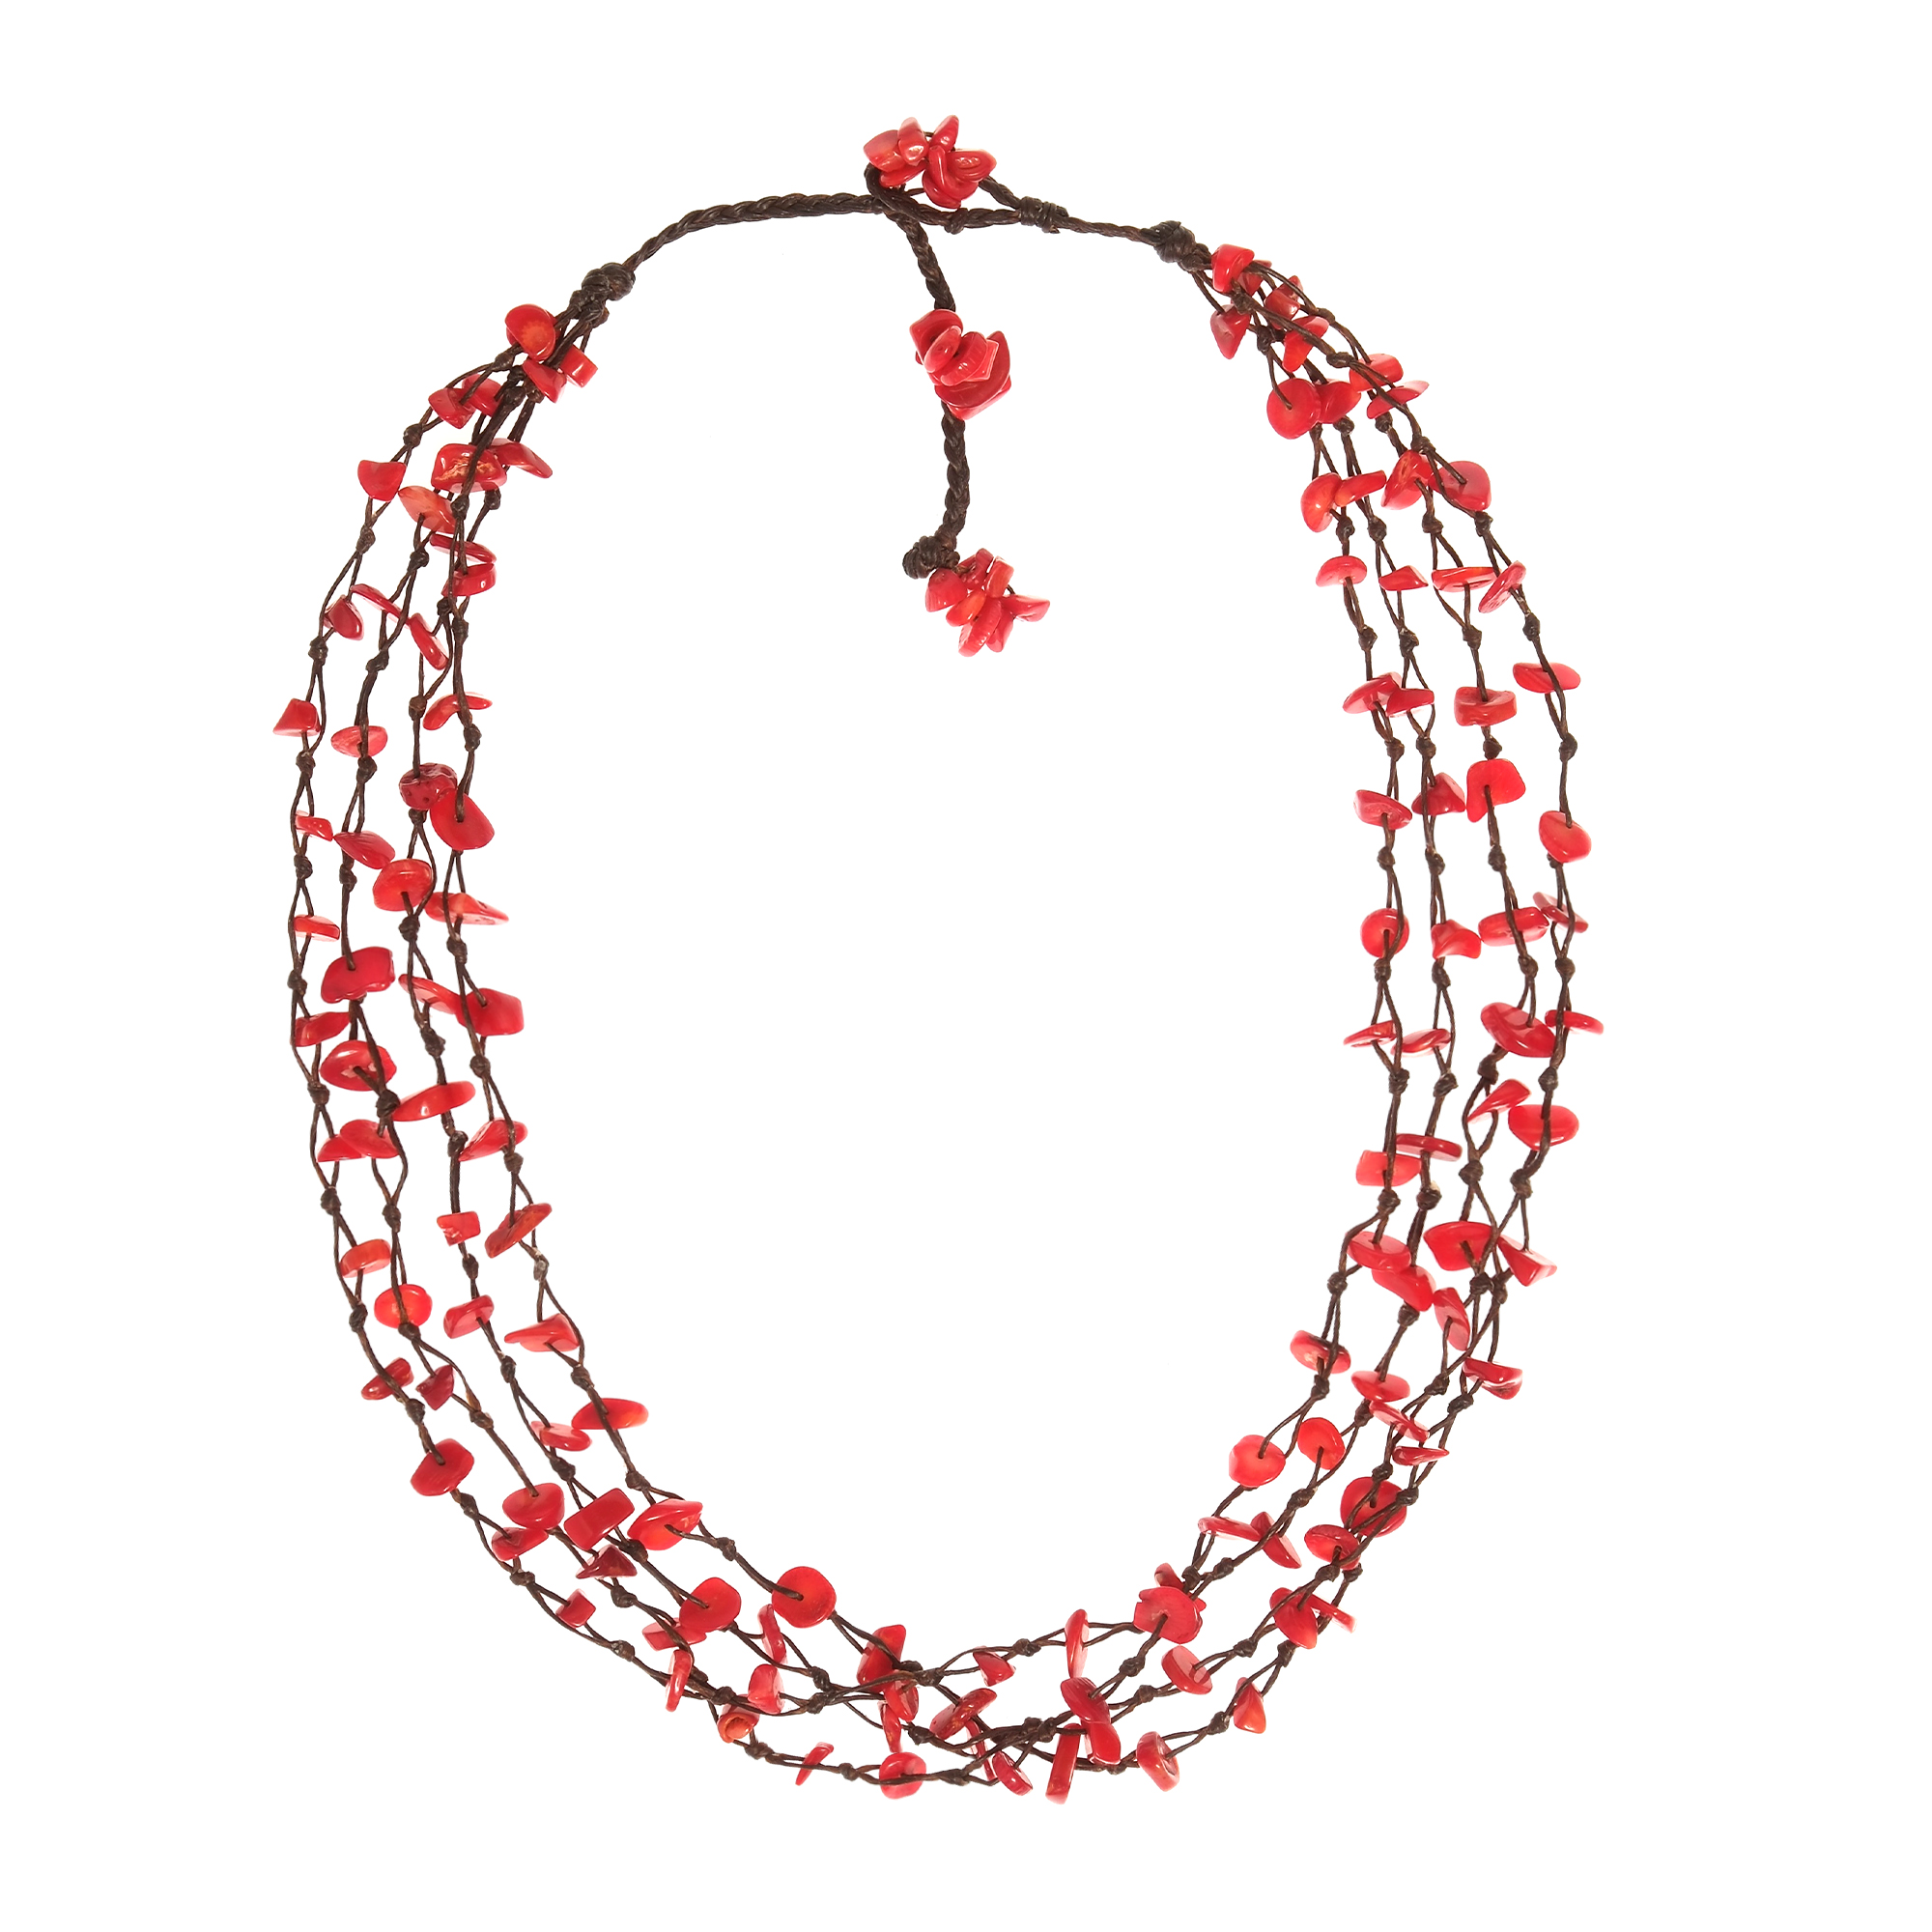 Synthetic Coral Cotton Wax Rope Beauty Multistrand Toggle Red Necklace